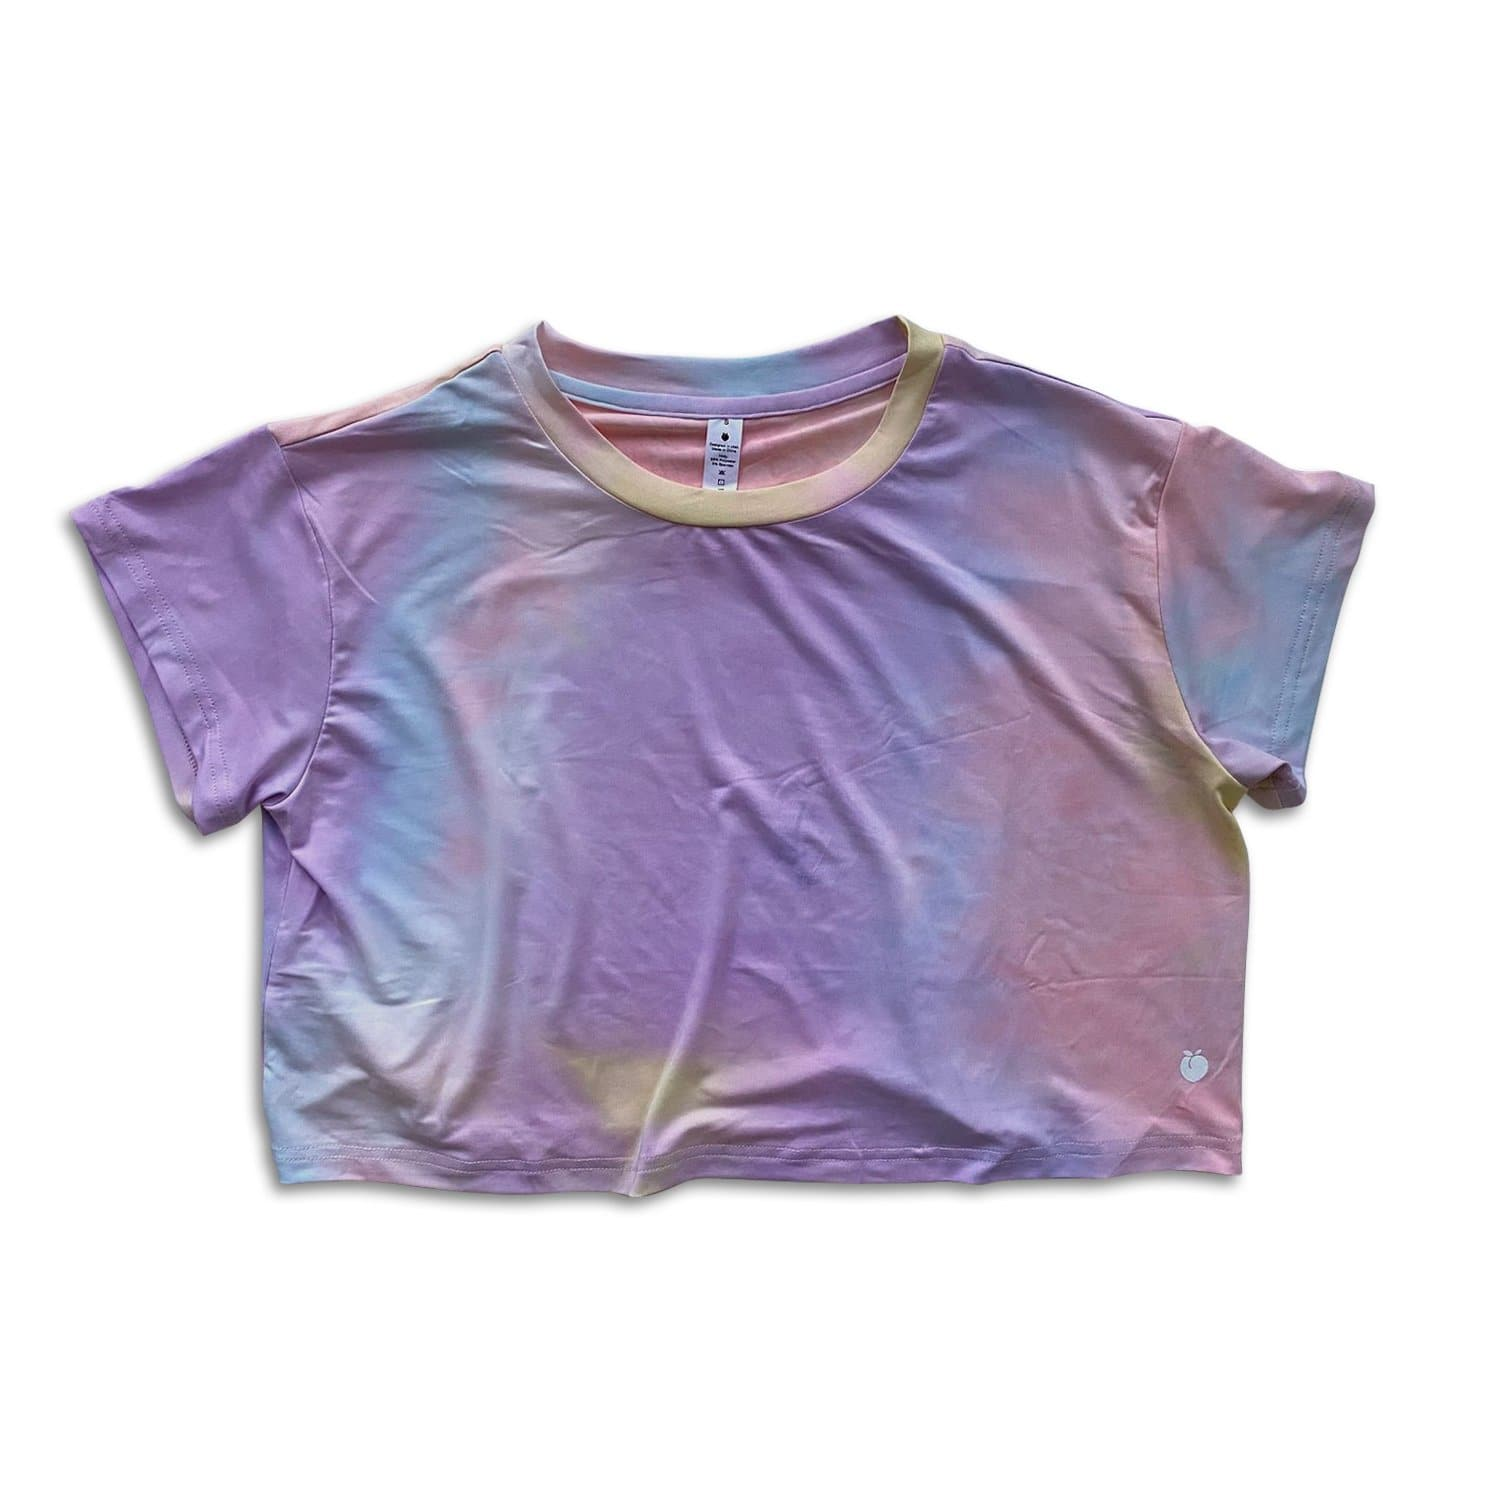 Tie-Dye Crop Tee - Cotton Candy